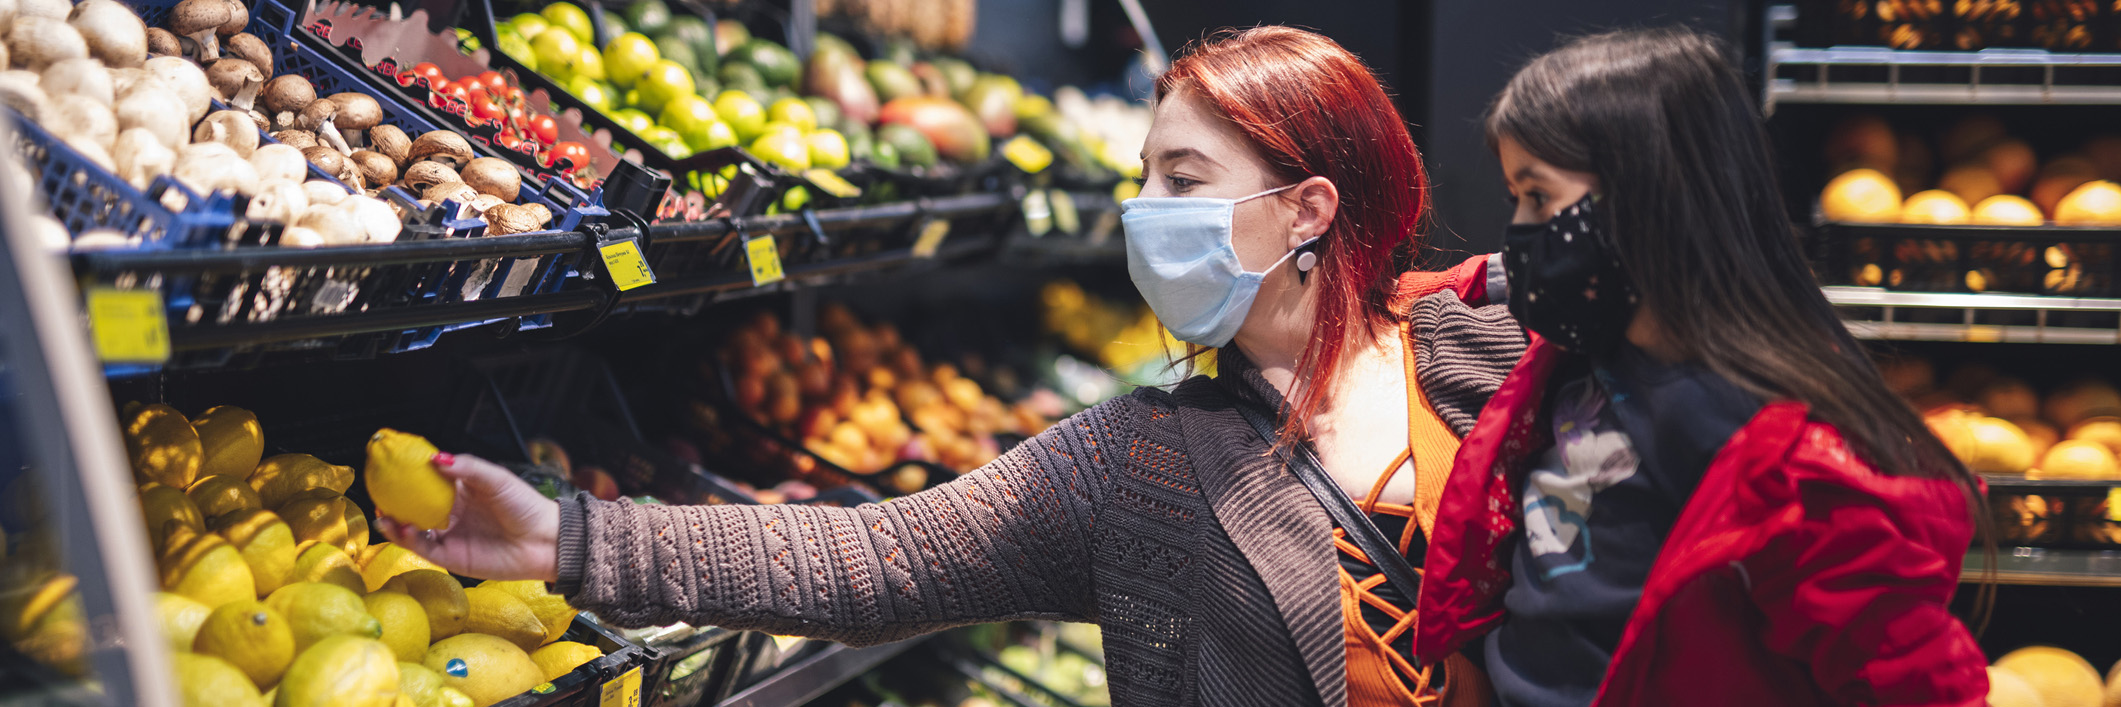 woman and daughter shopping for produce wearing masks